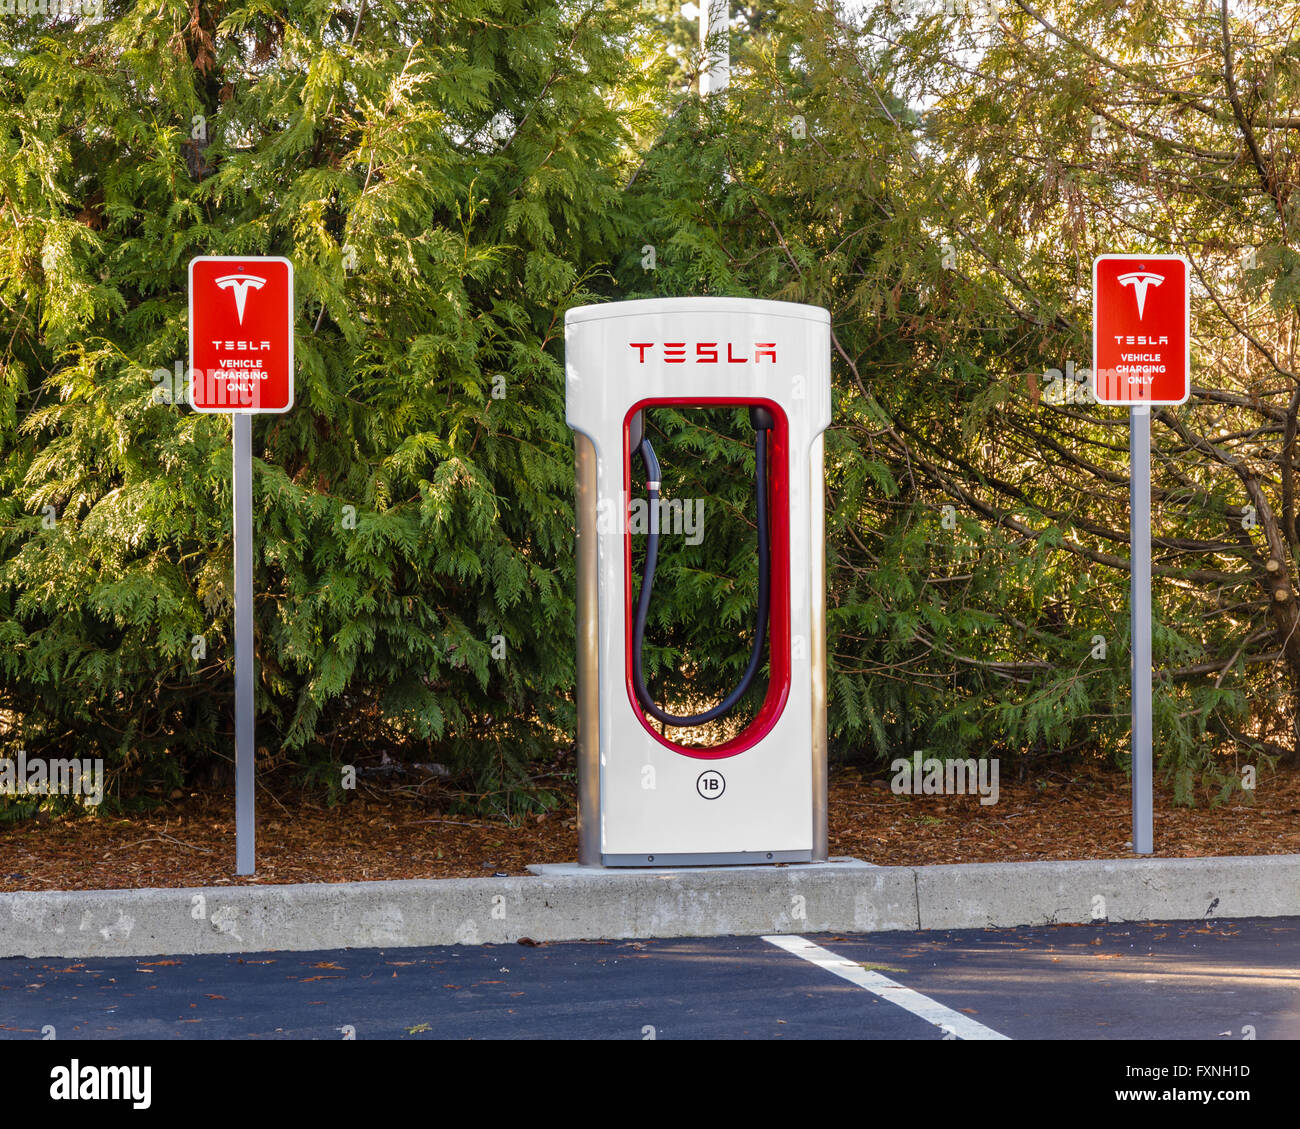 Electric Supercharger Australia: Tesla Charger Stock Photos & Tesla Charger Stock Images